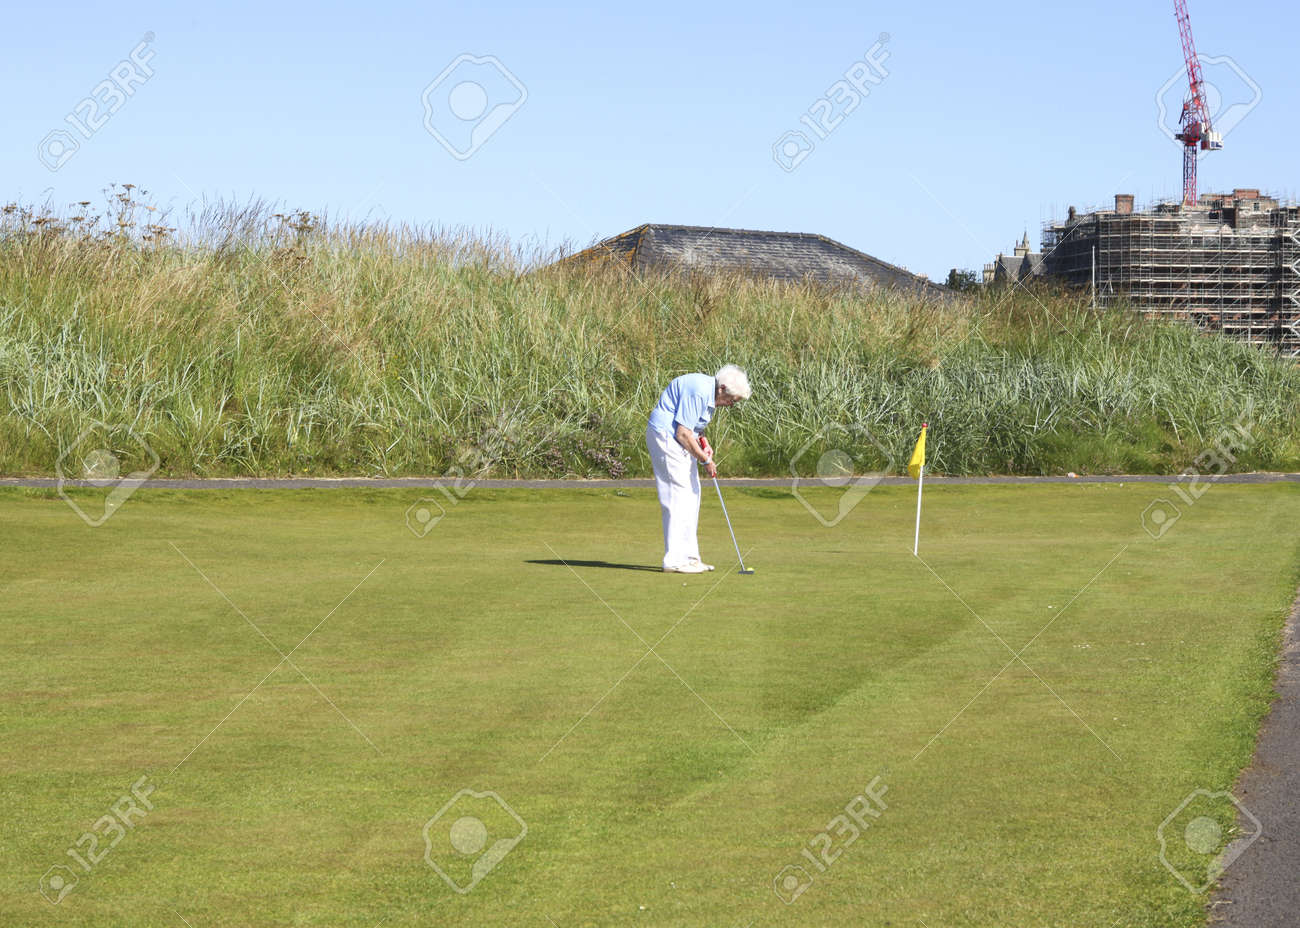 ST.ANDREWS, GREAT BRITAIN-JULY 24: Very old grey haired woman is playing golf at St. Andrews.on July 24,2011. Golf is a sport you can maintain up untill a very old age.  Stock Photo - 10738836